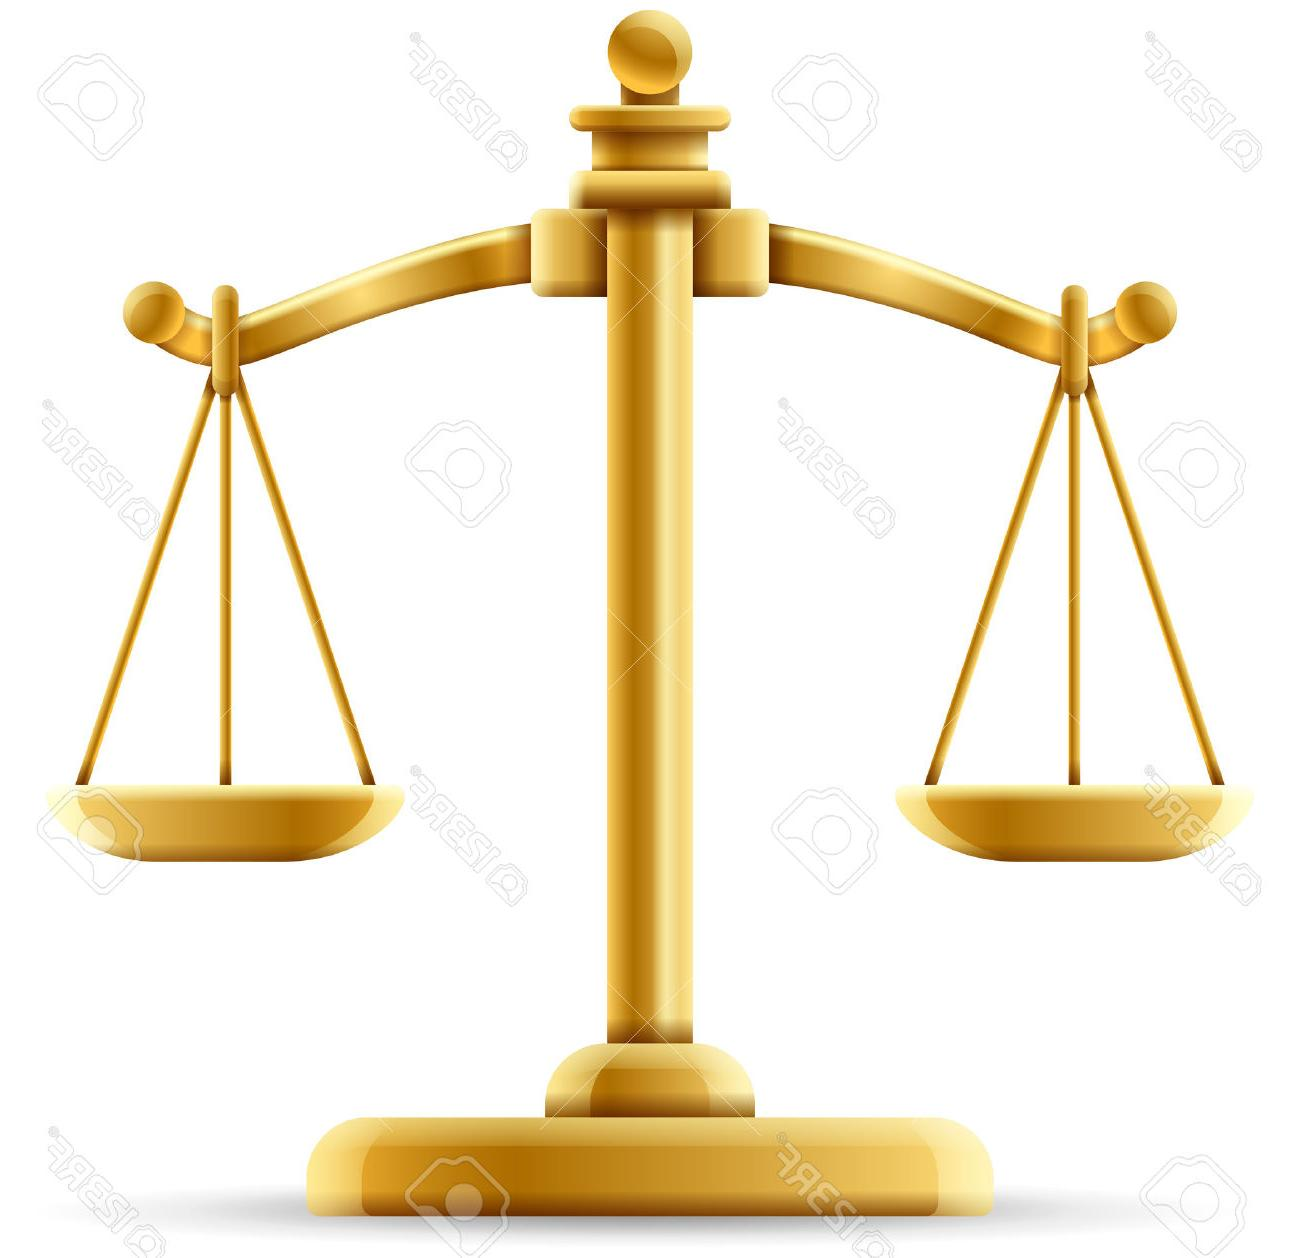 balance scale clipart free download best balance scale Scales of Justice Symbol Gavel Clip Art